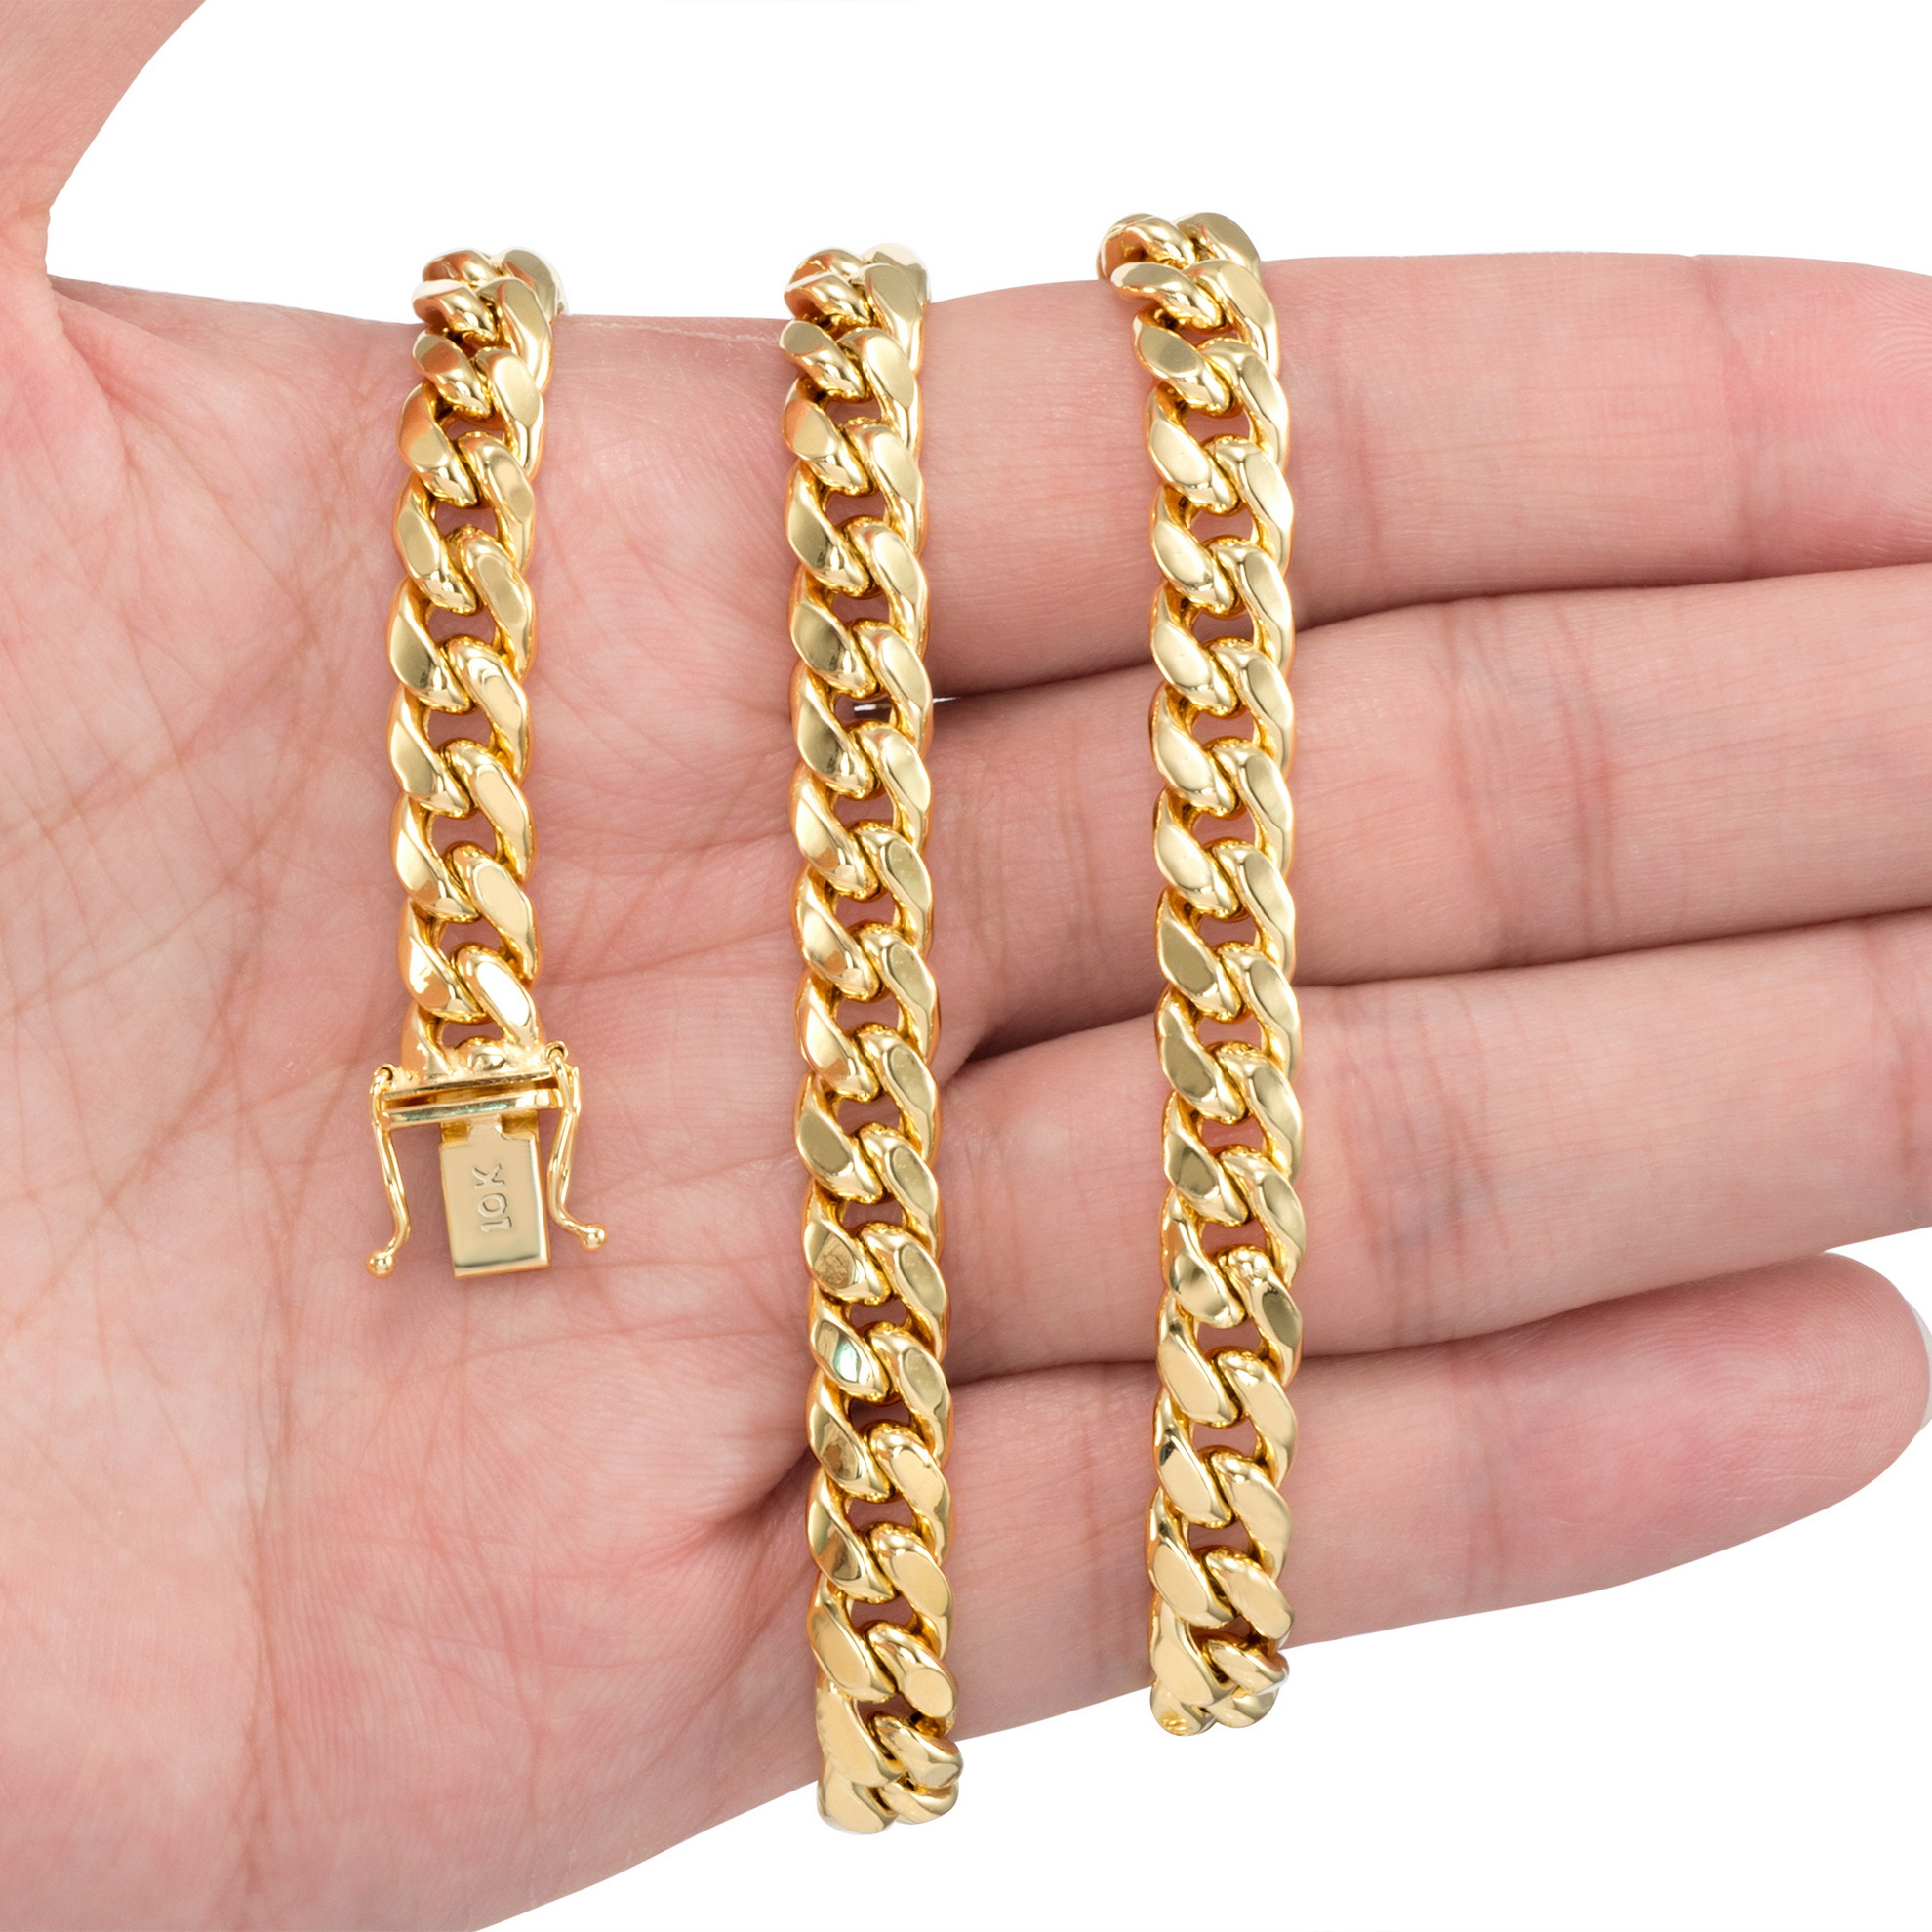 10K-Yellow-Gold-3-5mm-17mm-Real-Miami-Cuban-Link-Necklace-Chain-Bracelet-7-034-30-034 thumbnail 30